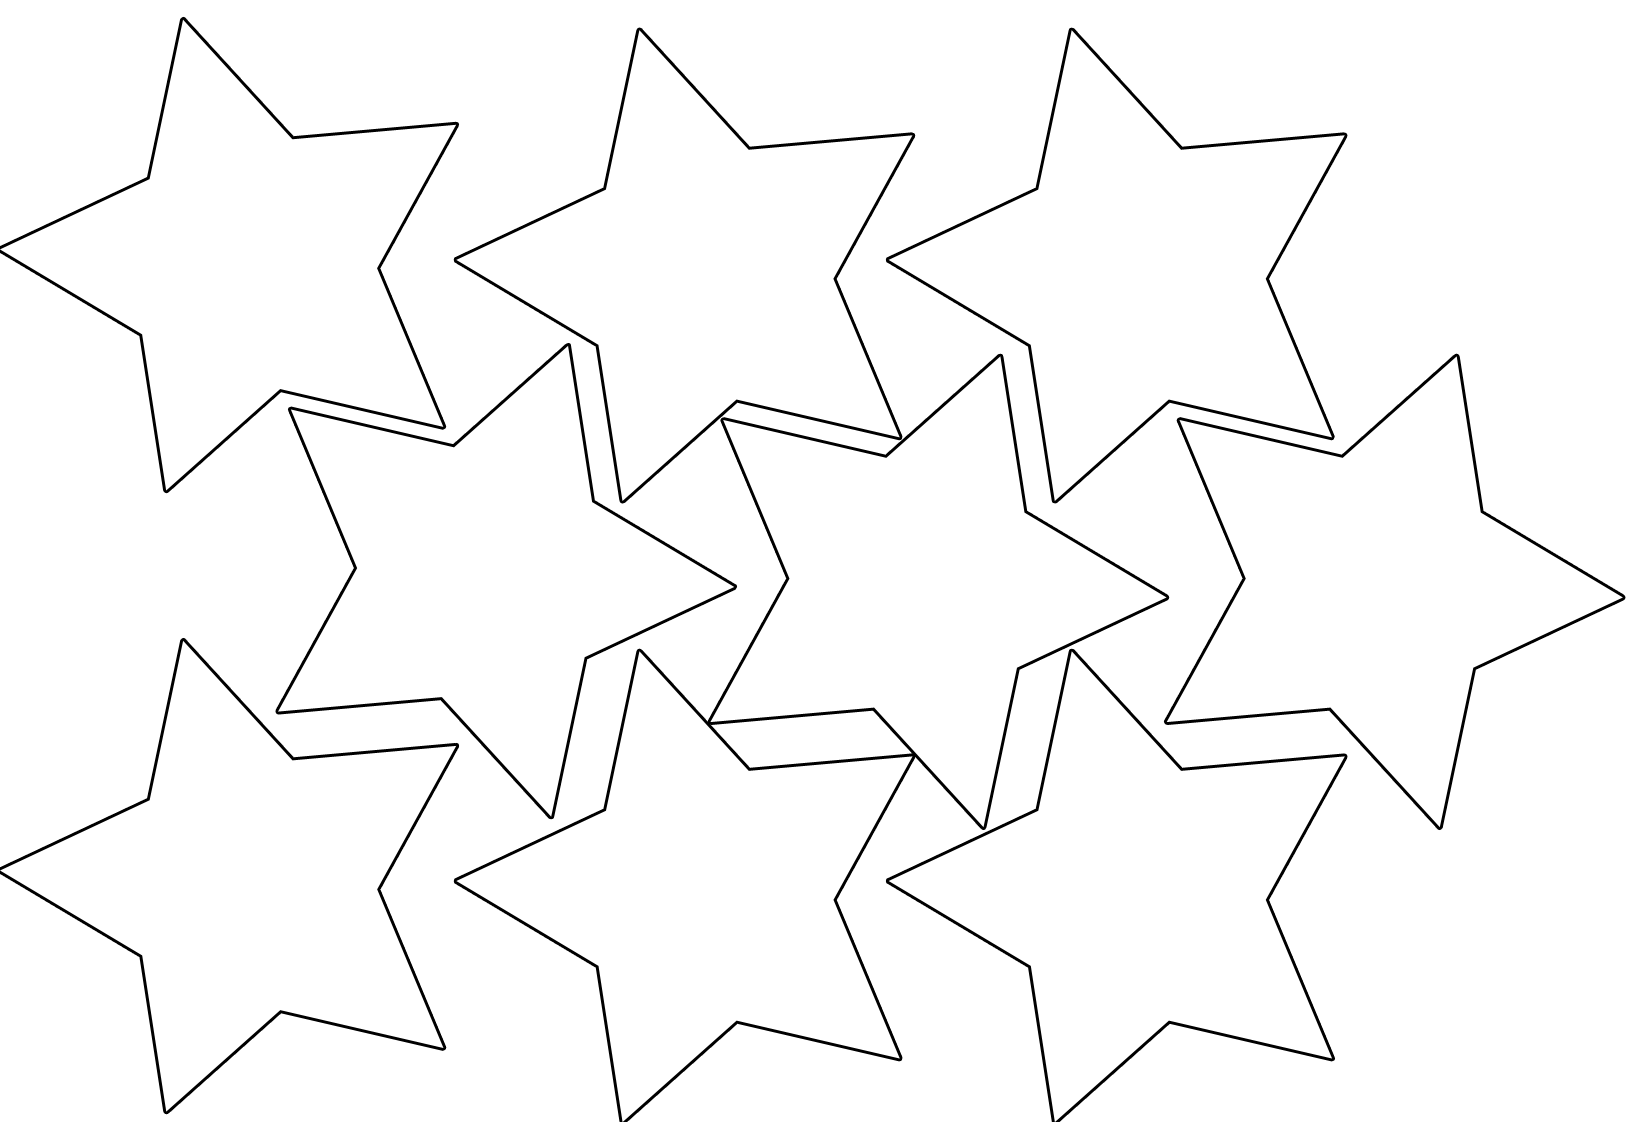 small star template printable free - 5 best images of small cut out star template printable